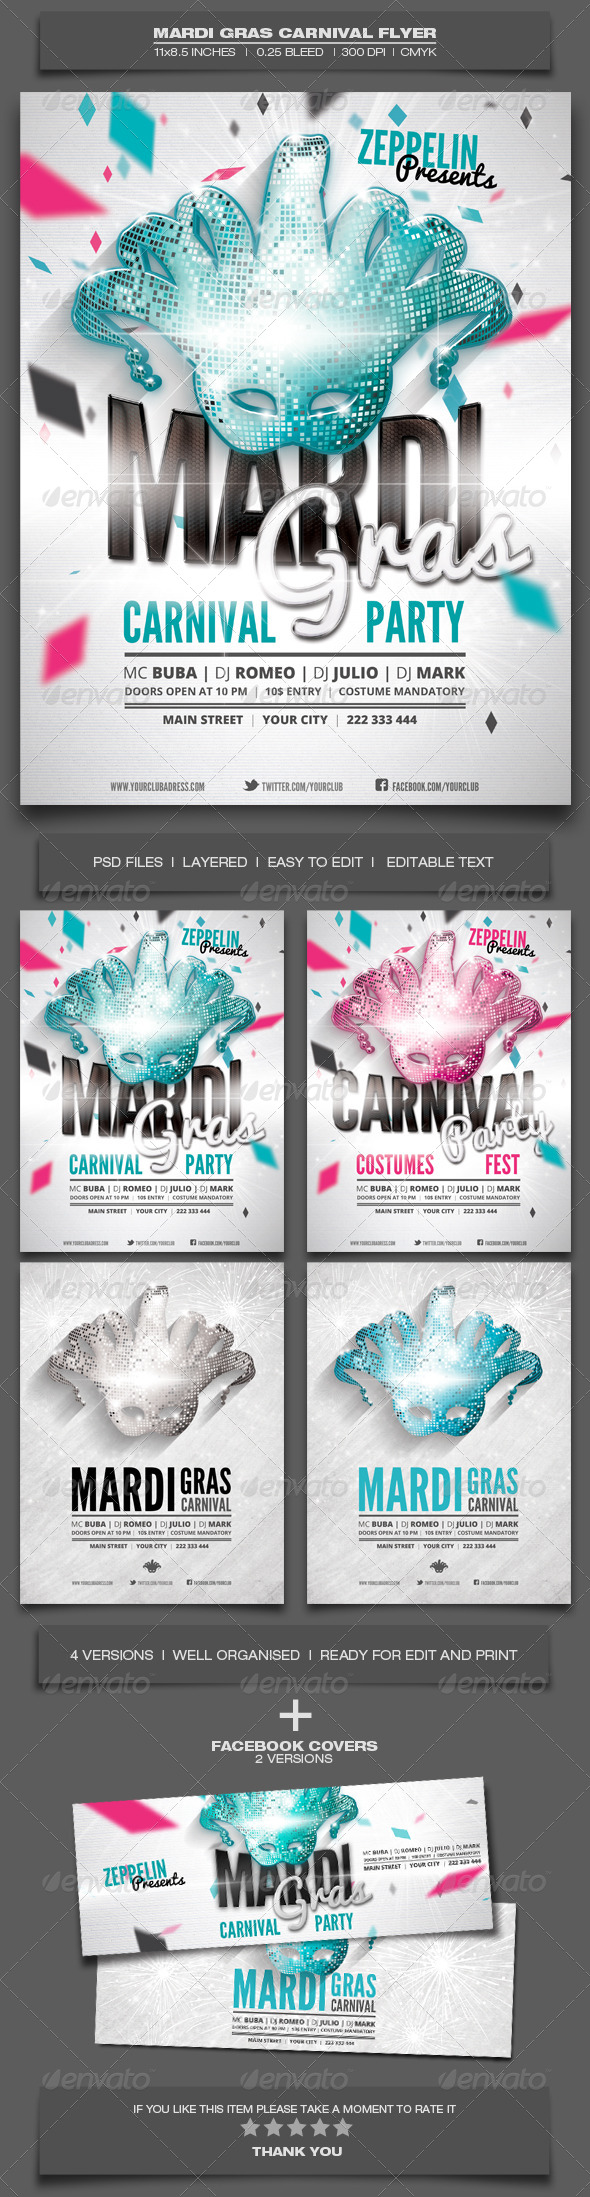 Mardi Gras Carnival Flyer Template - Holidays Events